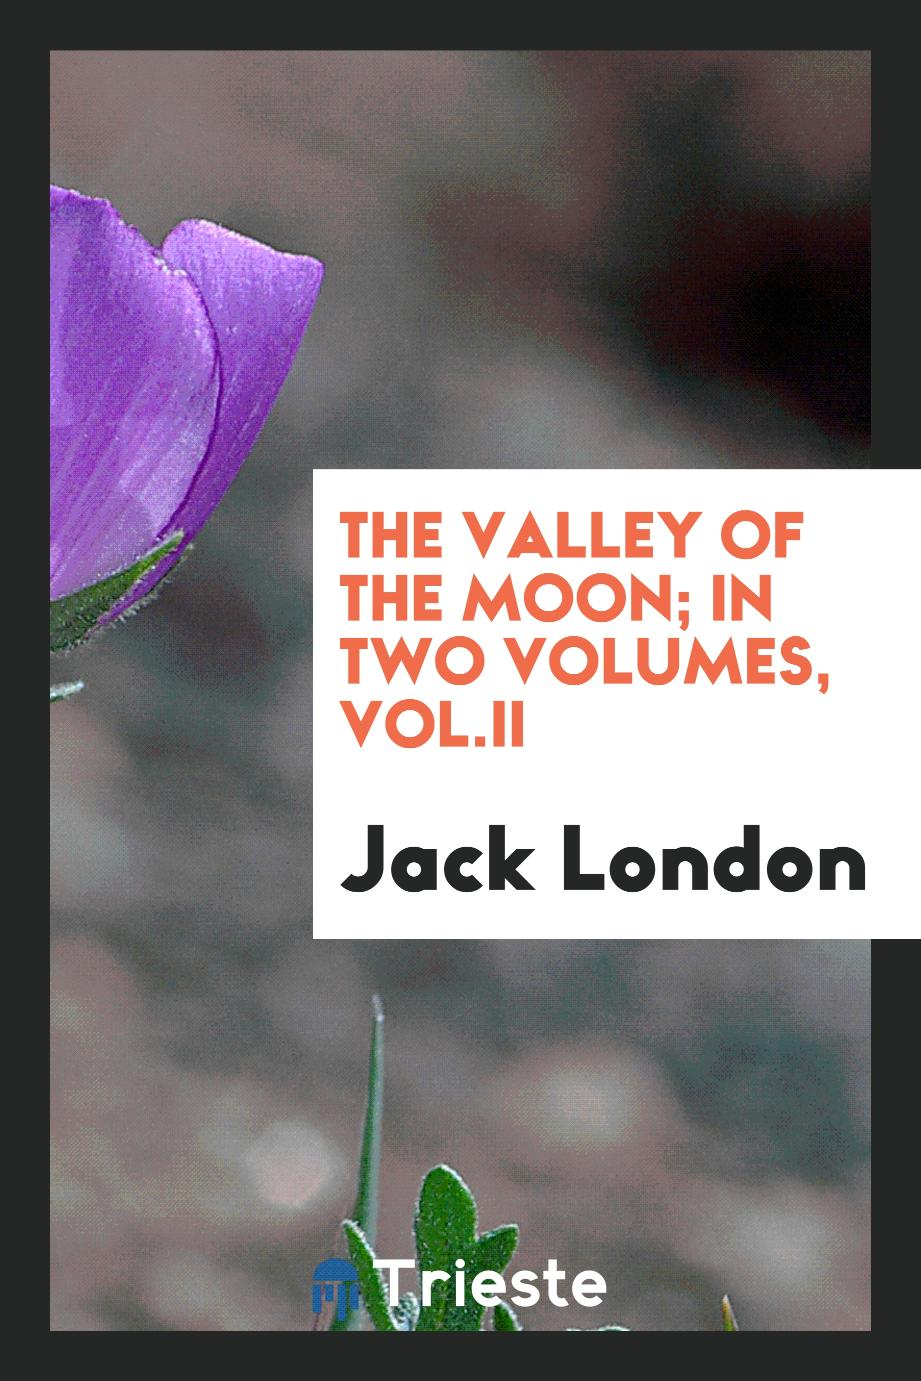 The Valley of the Moon; in two volumes, Vol.II